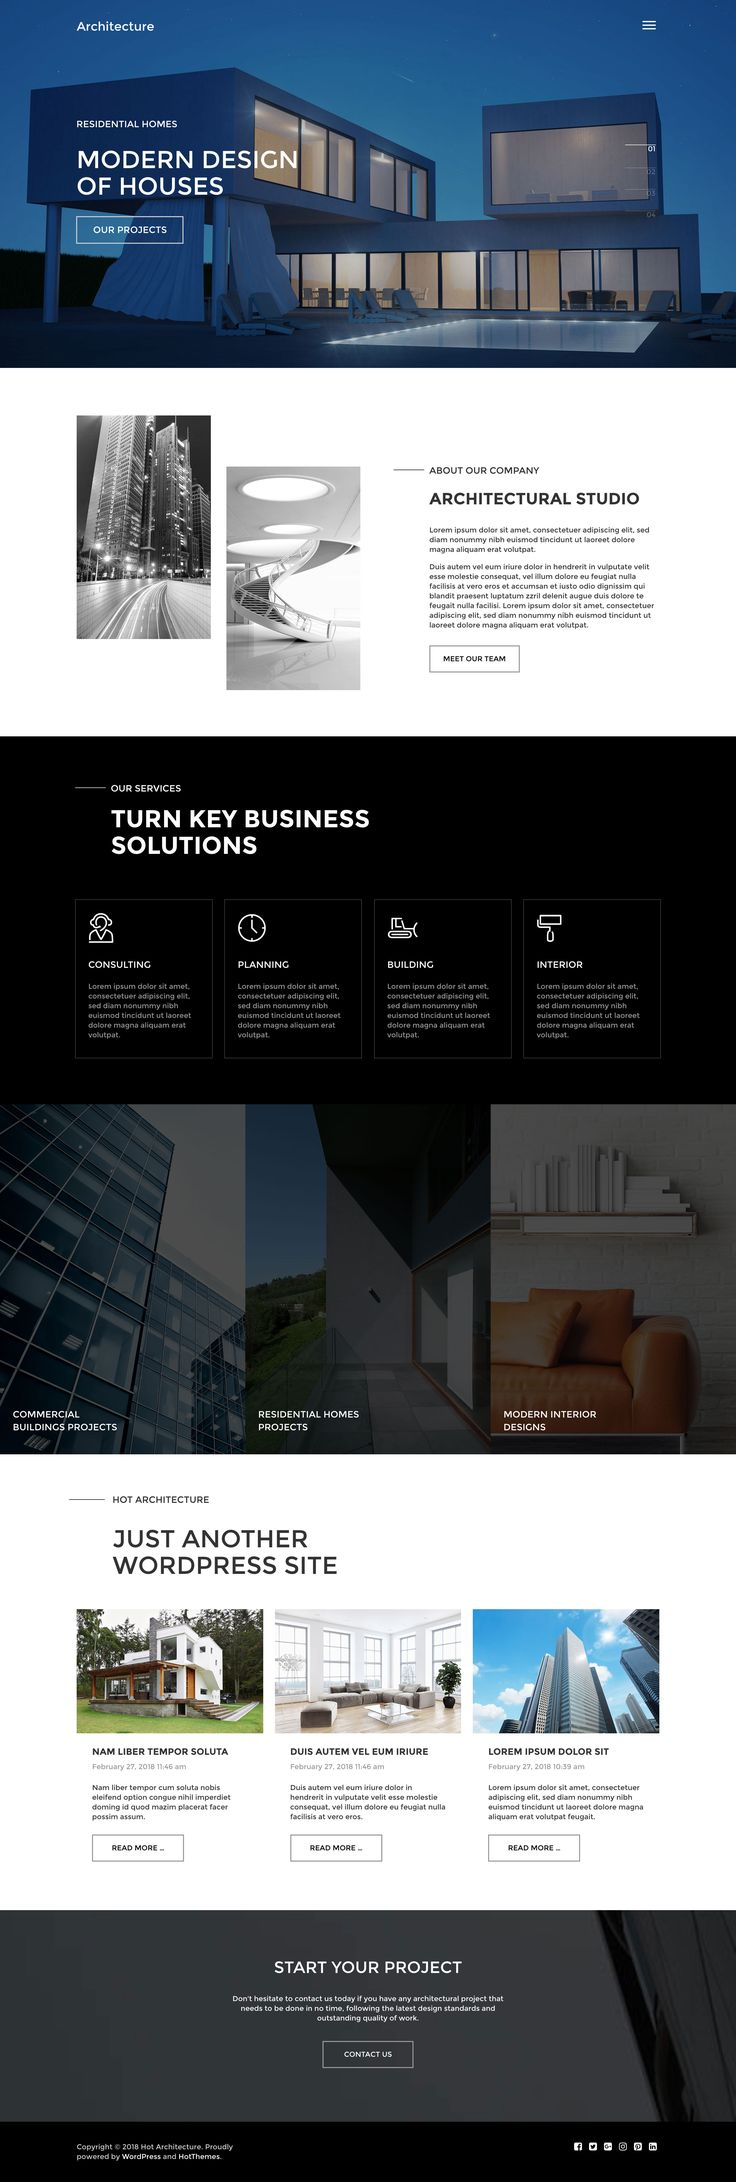 #Architecture #WordPress theme can be a good starting point for development of #website for companies related to architecture, #building, civil engineering and similar business fields.